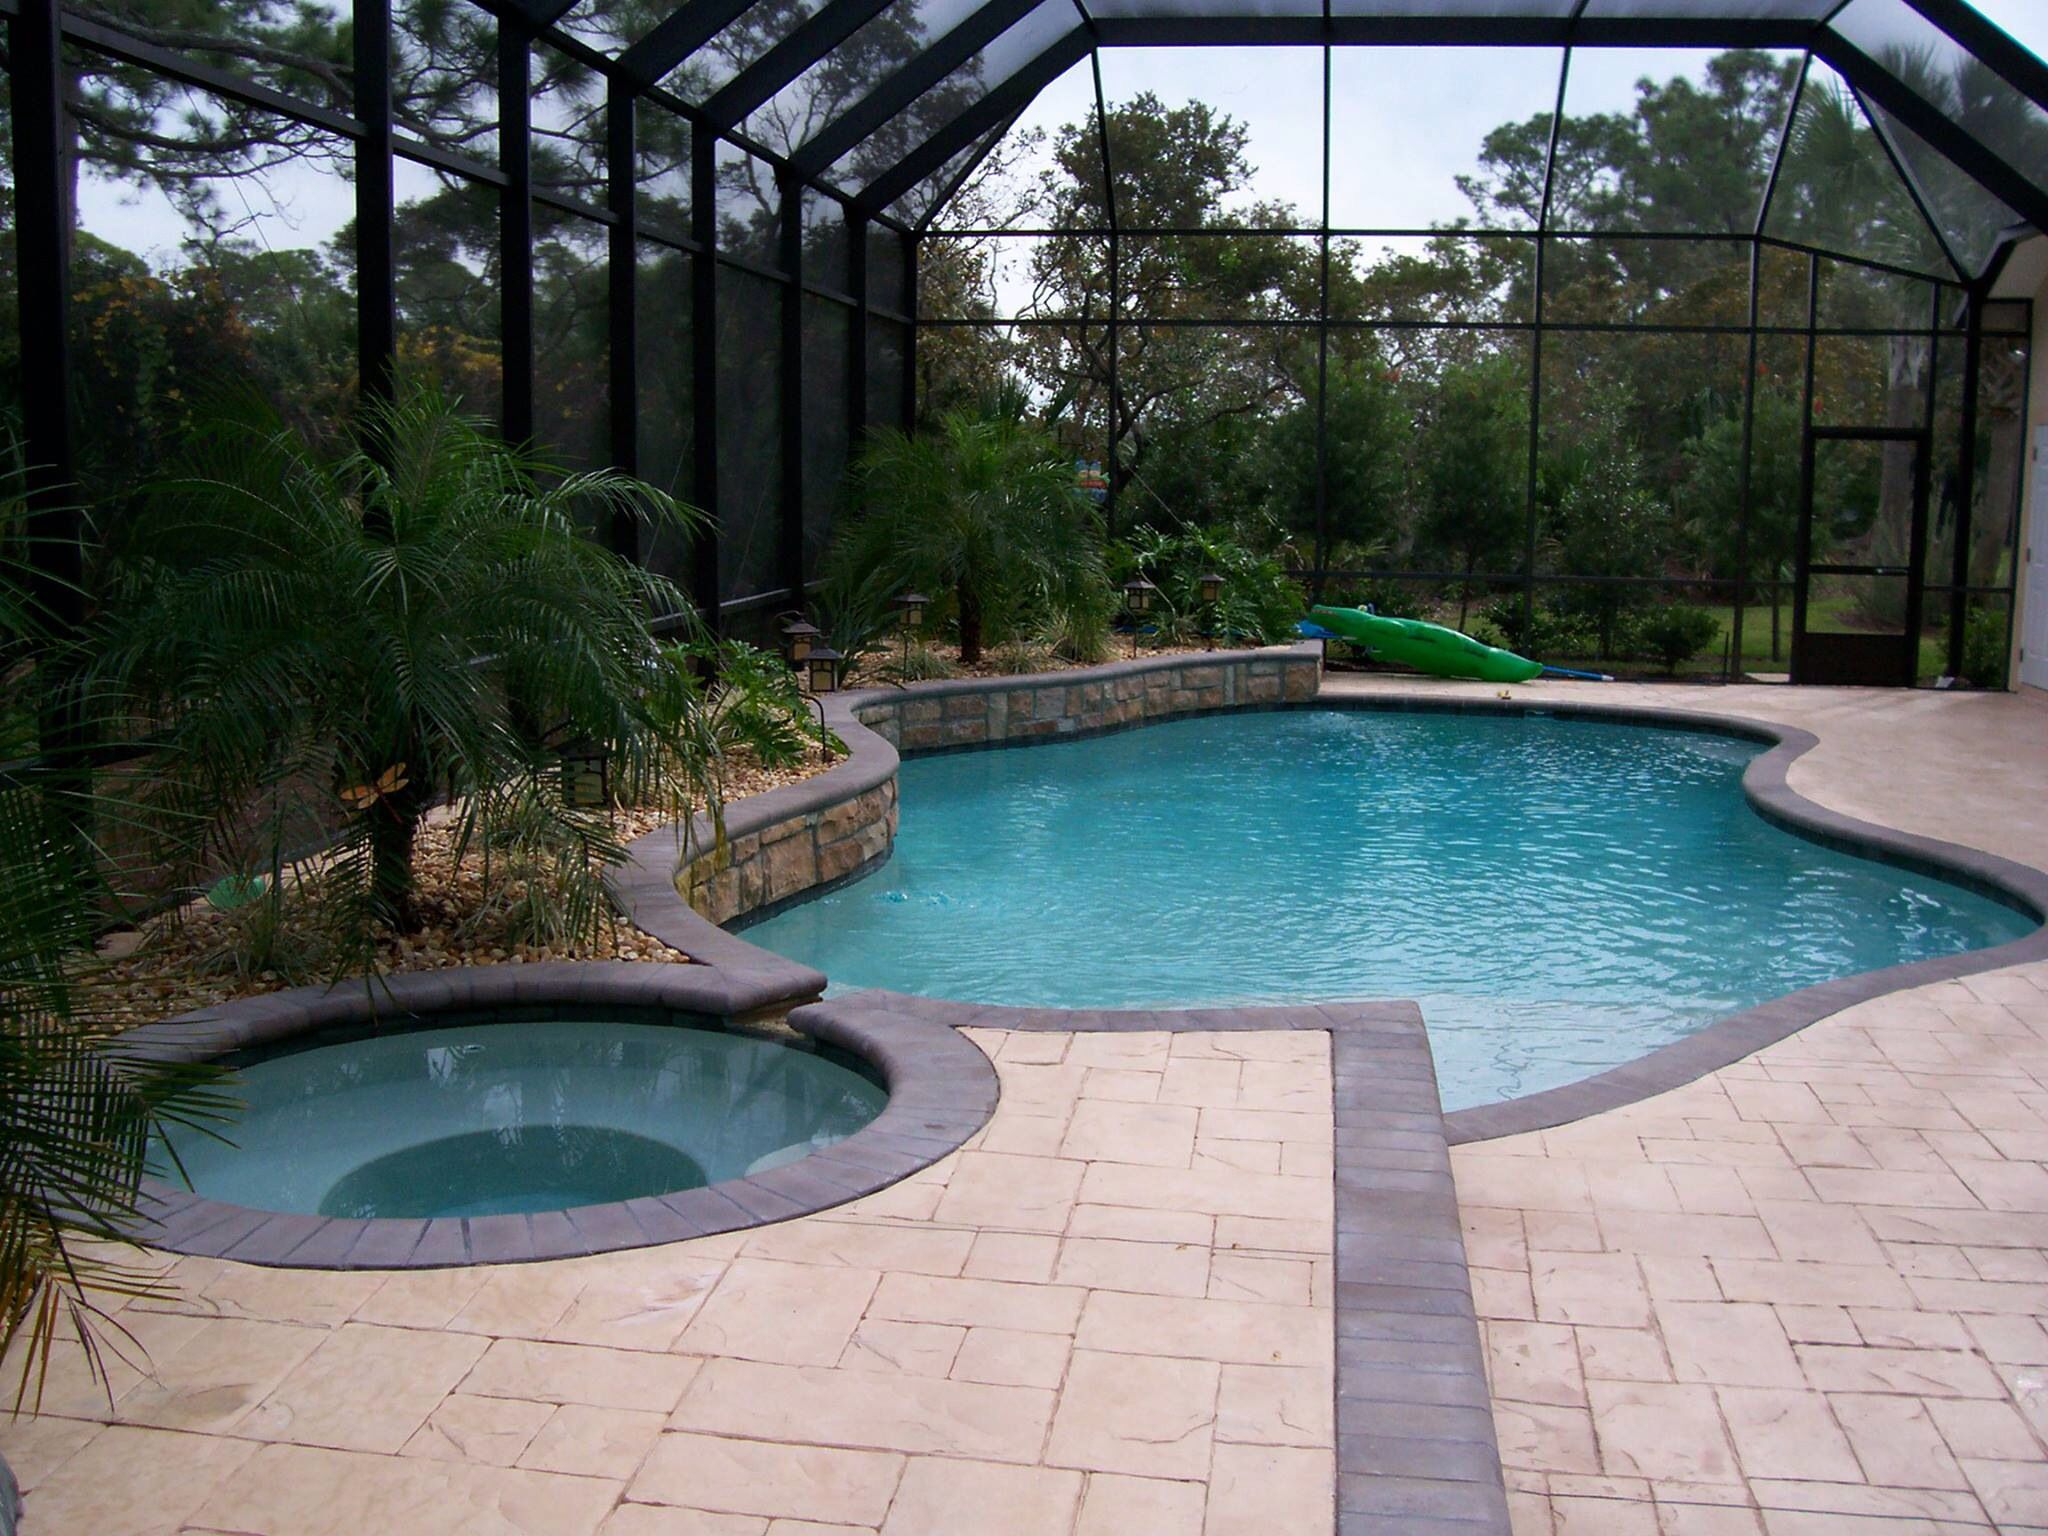 Screened In Pool With Spa Water Feature And Palm Trees In Garden Area I Like The Planter Boxes Between The Scre Swimming Pool Pictures Pool Pool Landscaping